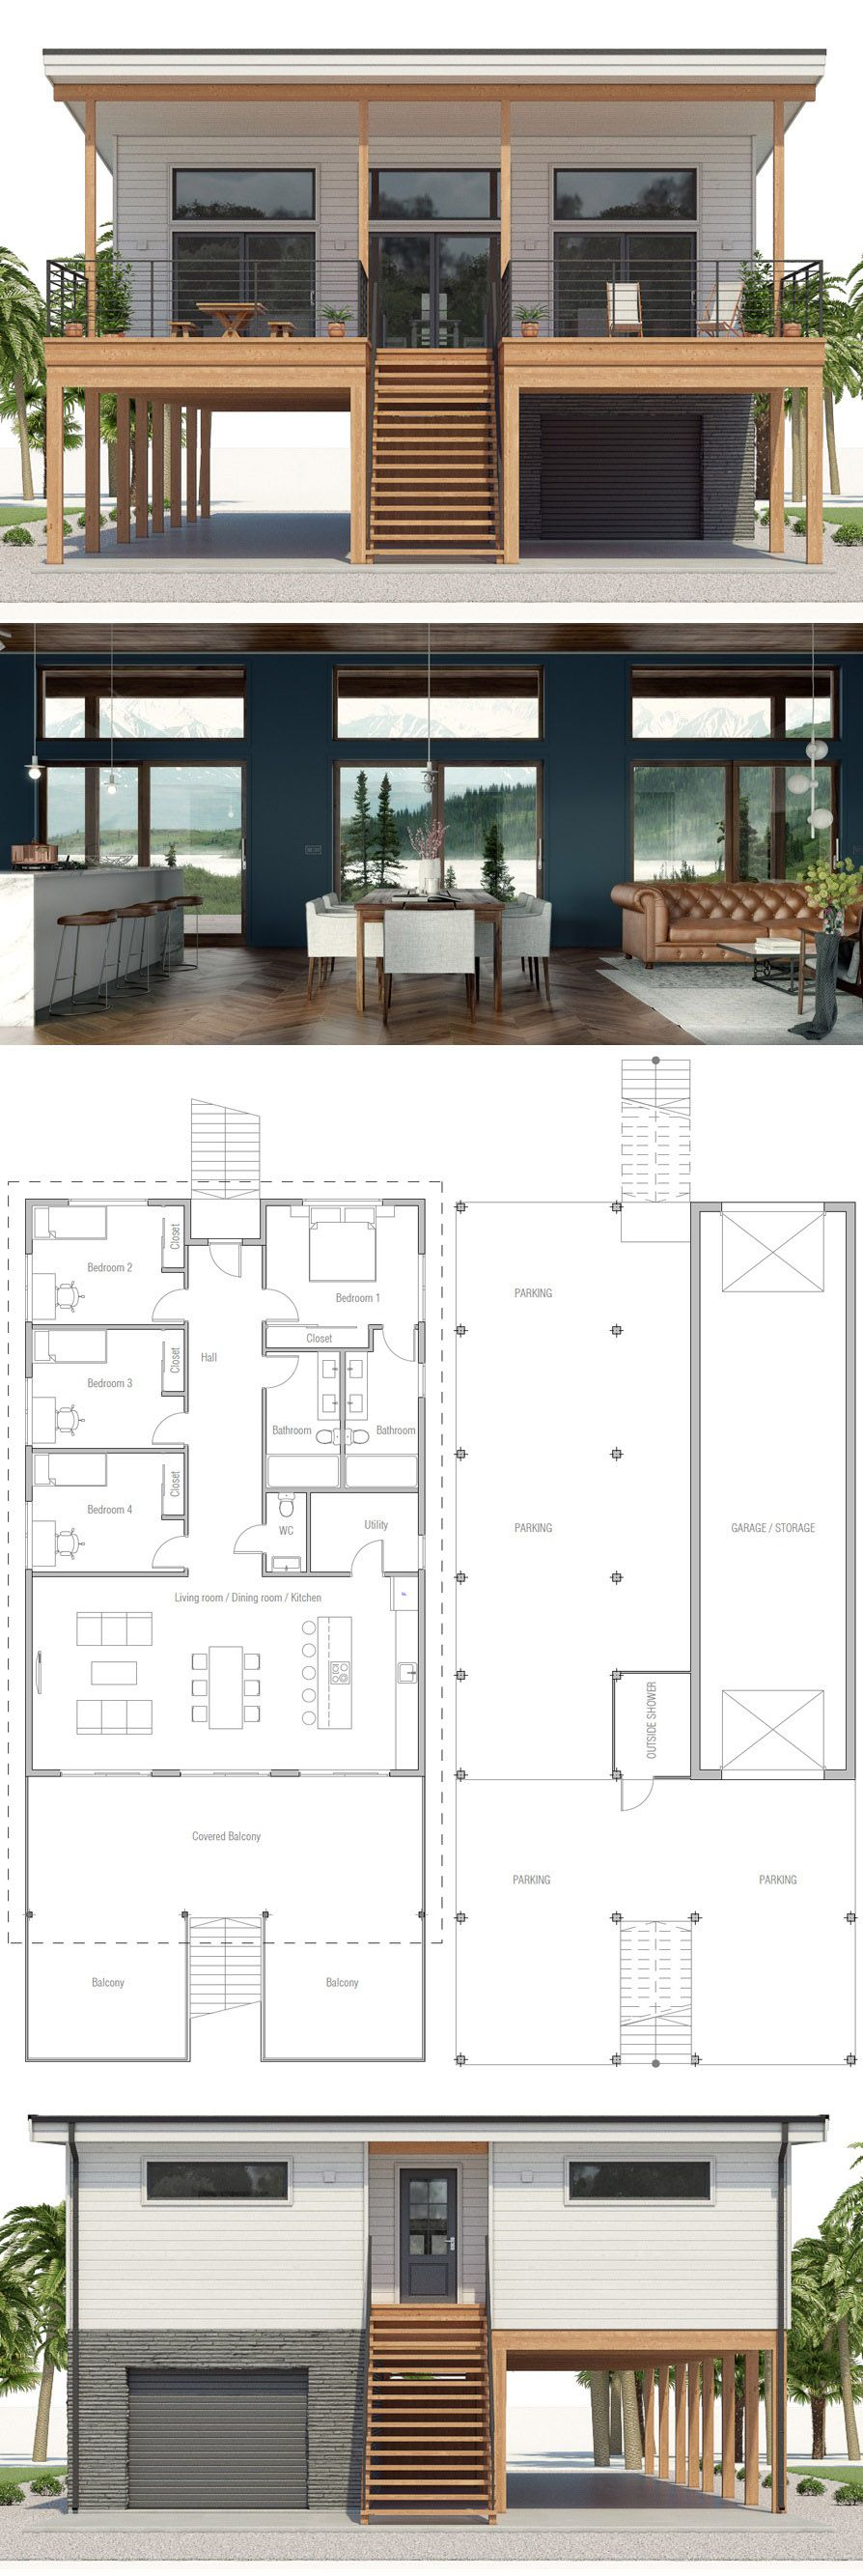 Architecture beach house plan architecture architects